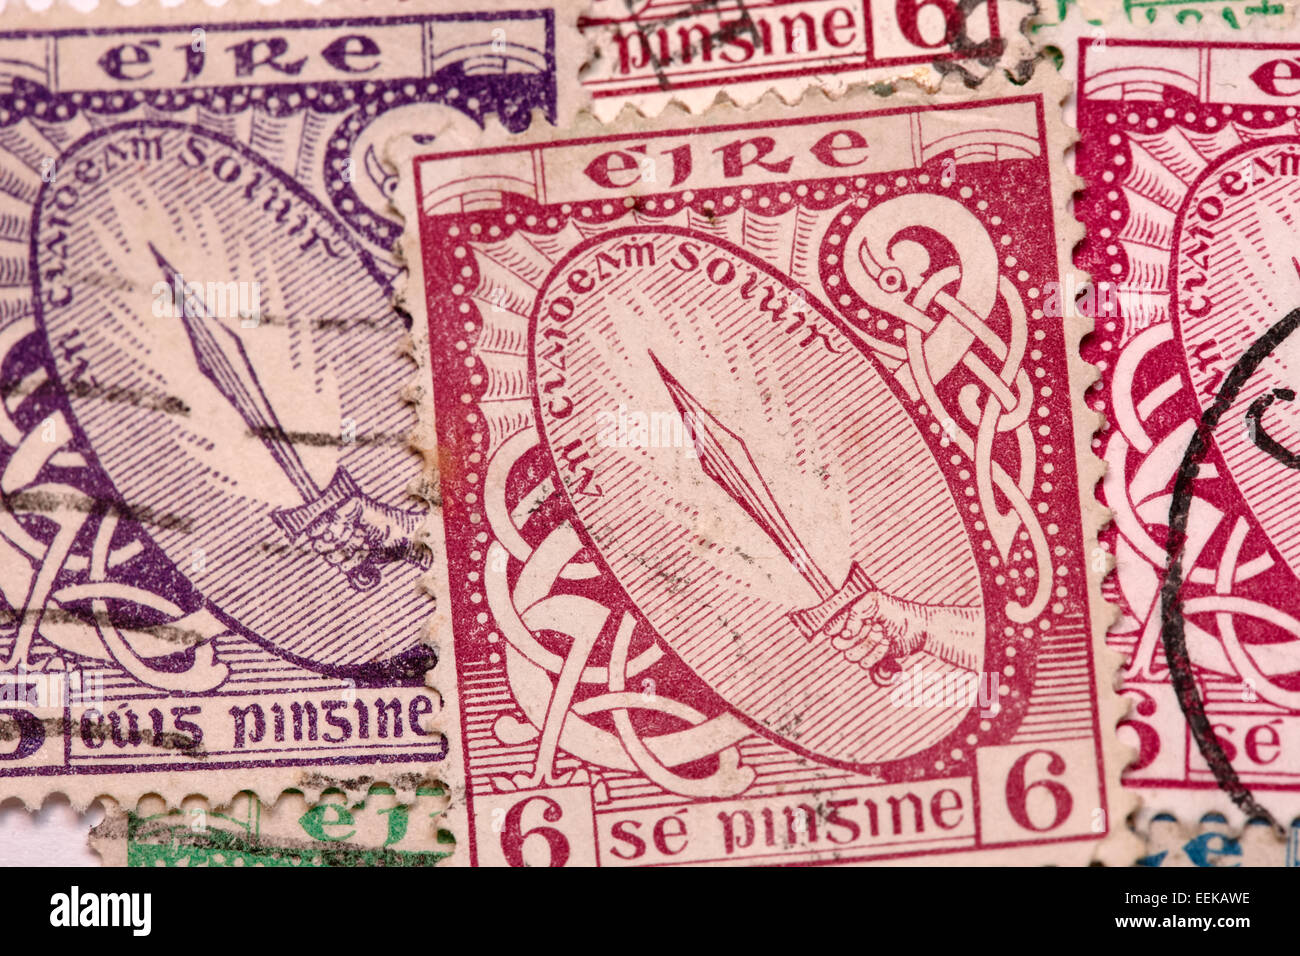 sword of light first definitive series of historic vintage old irish stamps - Stock Image